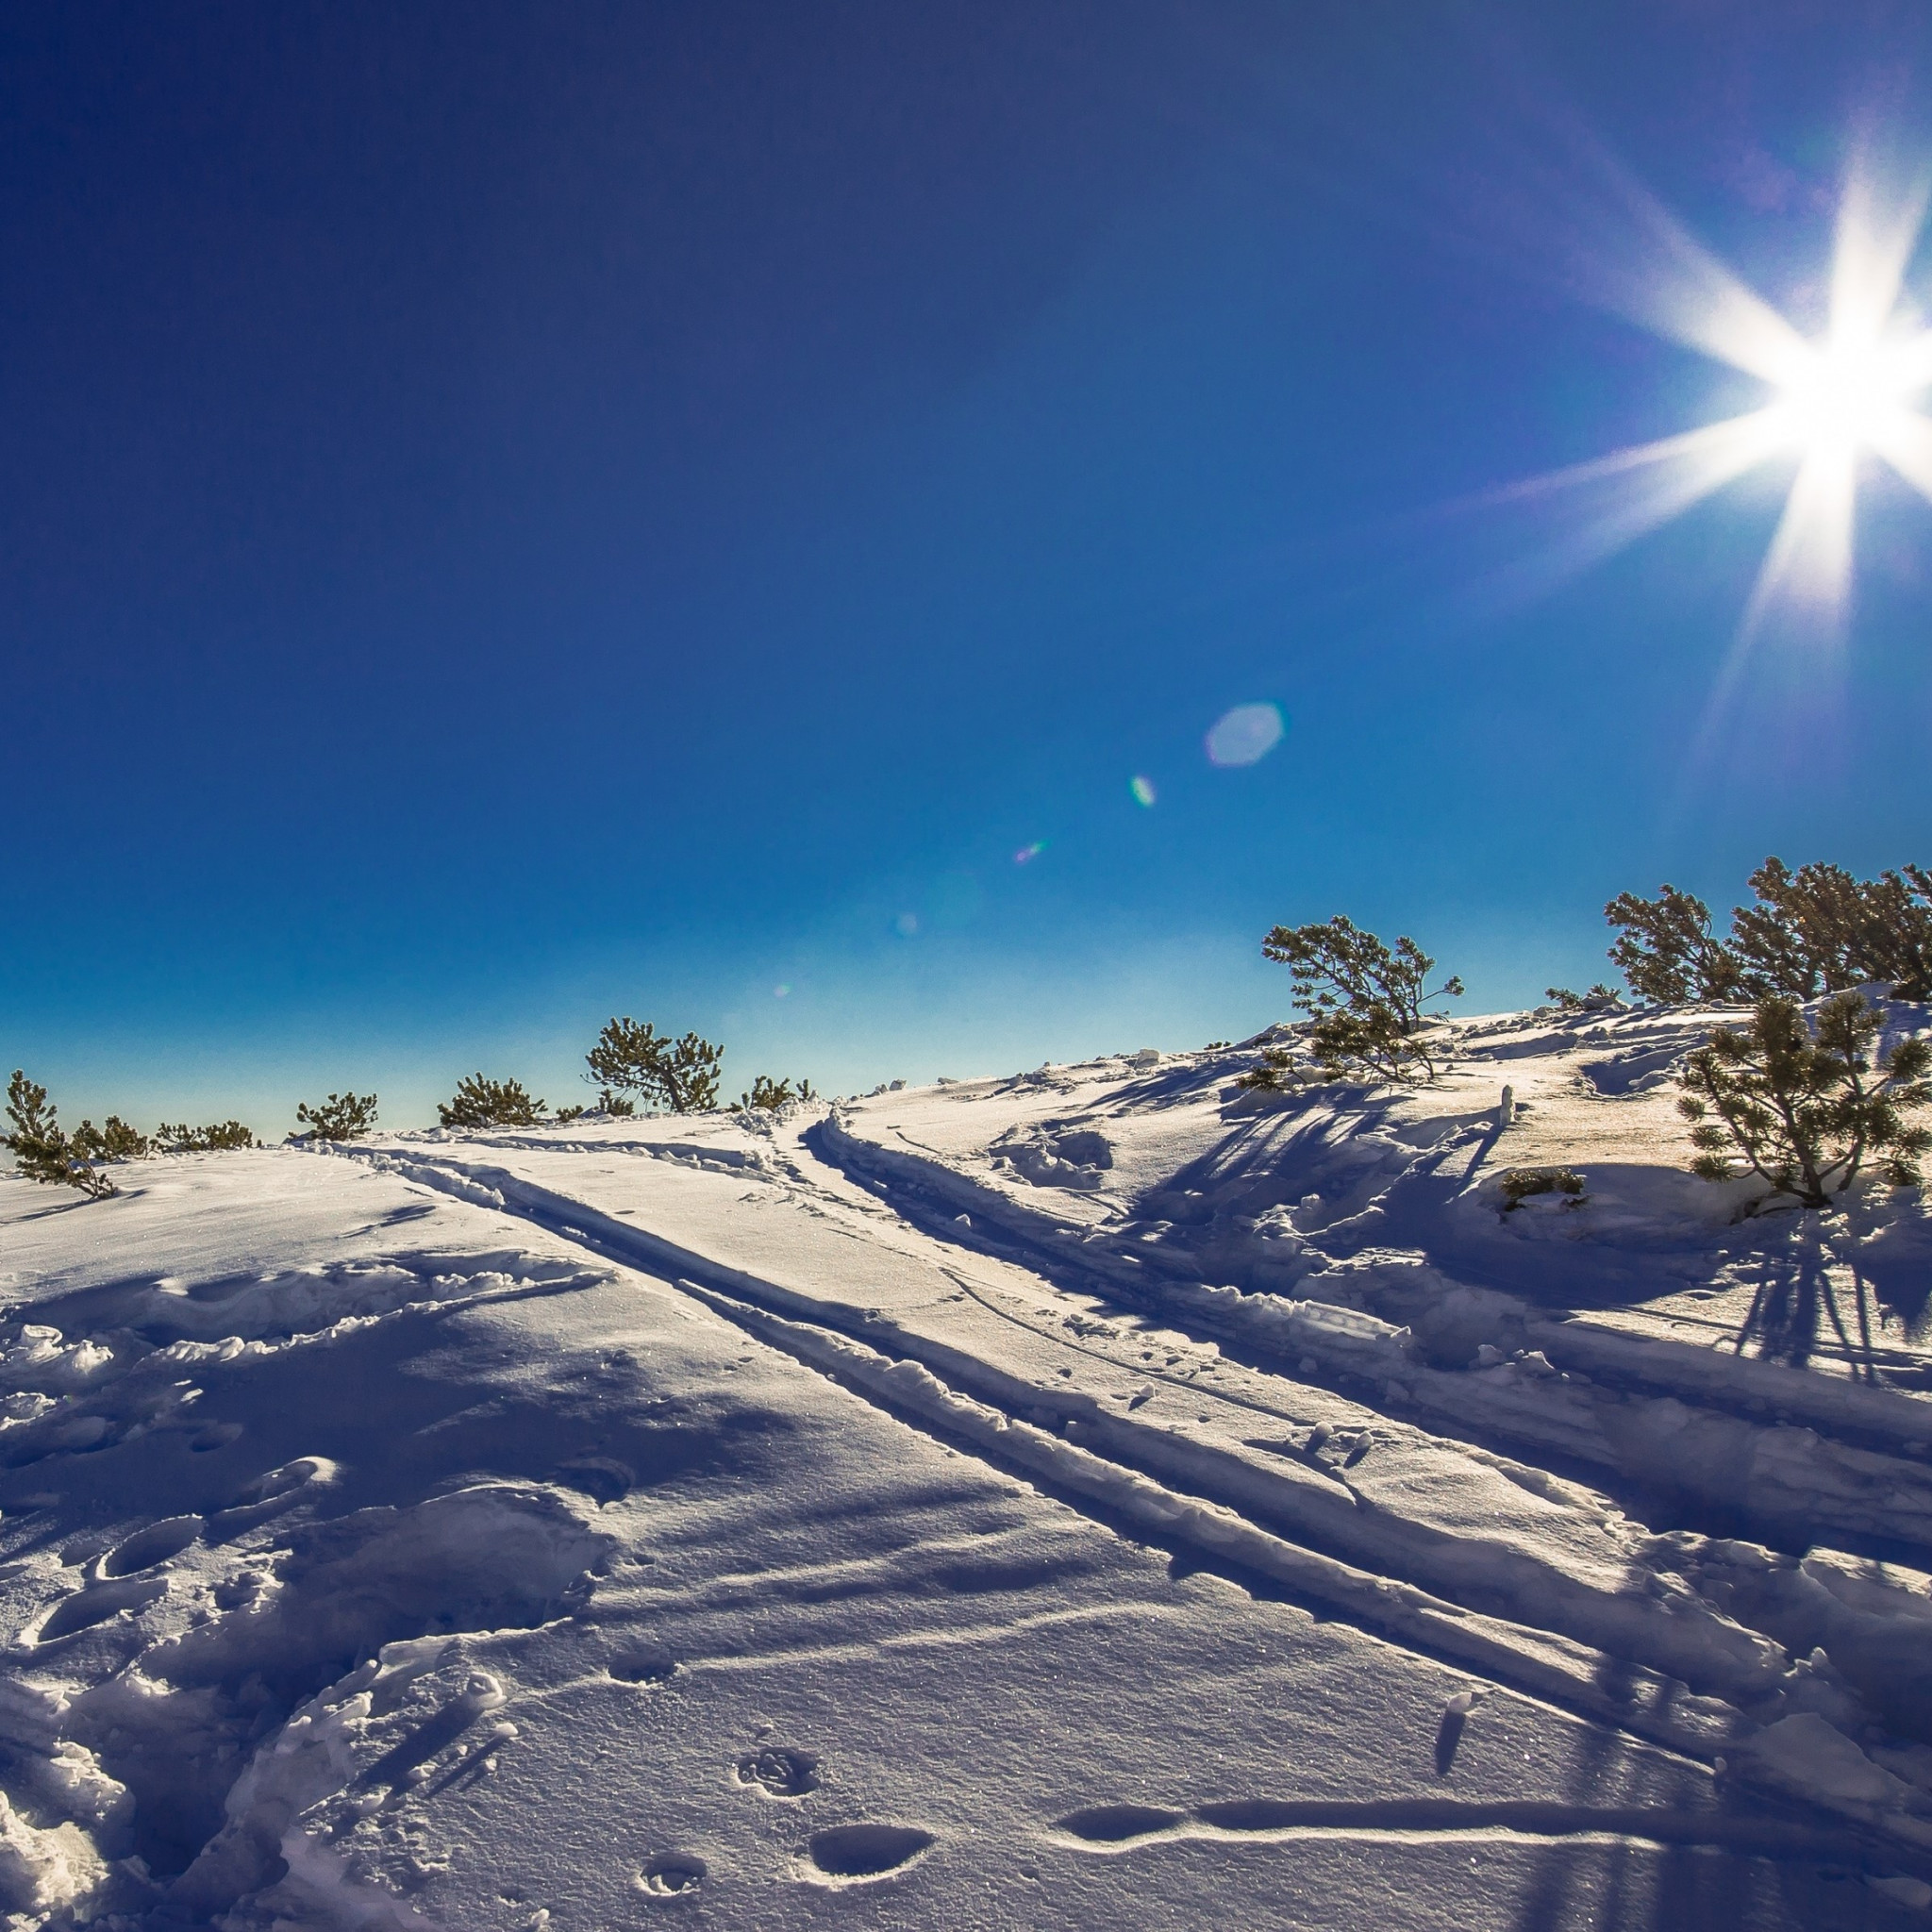 Sunny day in this Winter landscape wallpaper 2048x2048